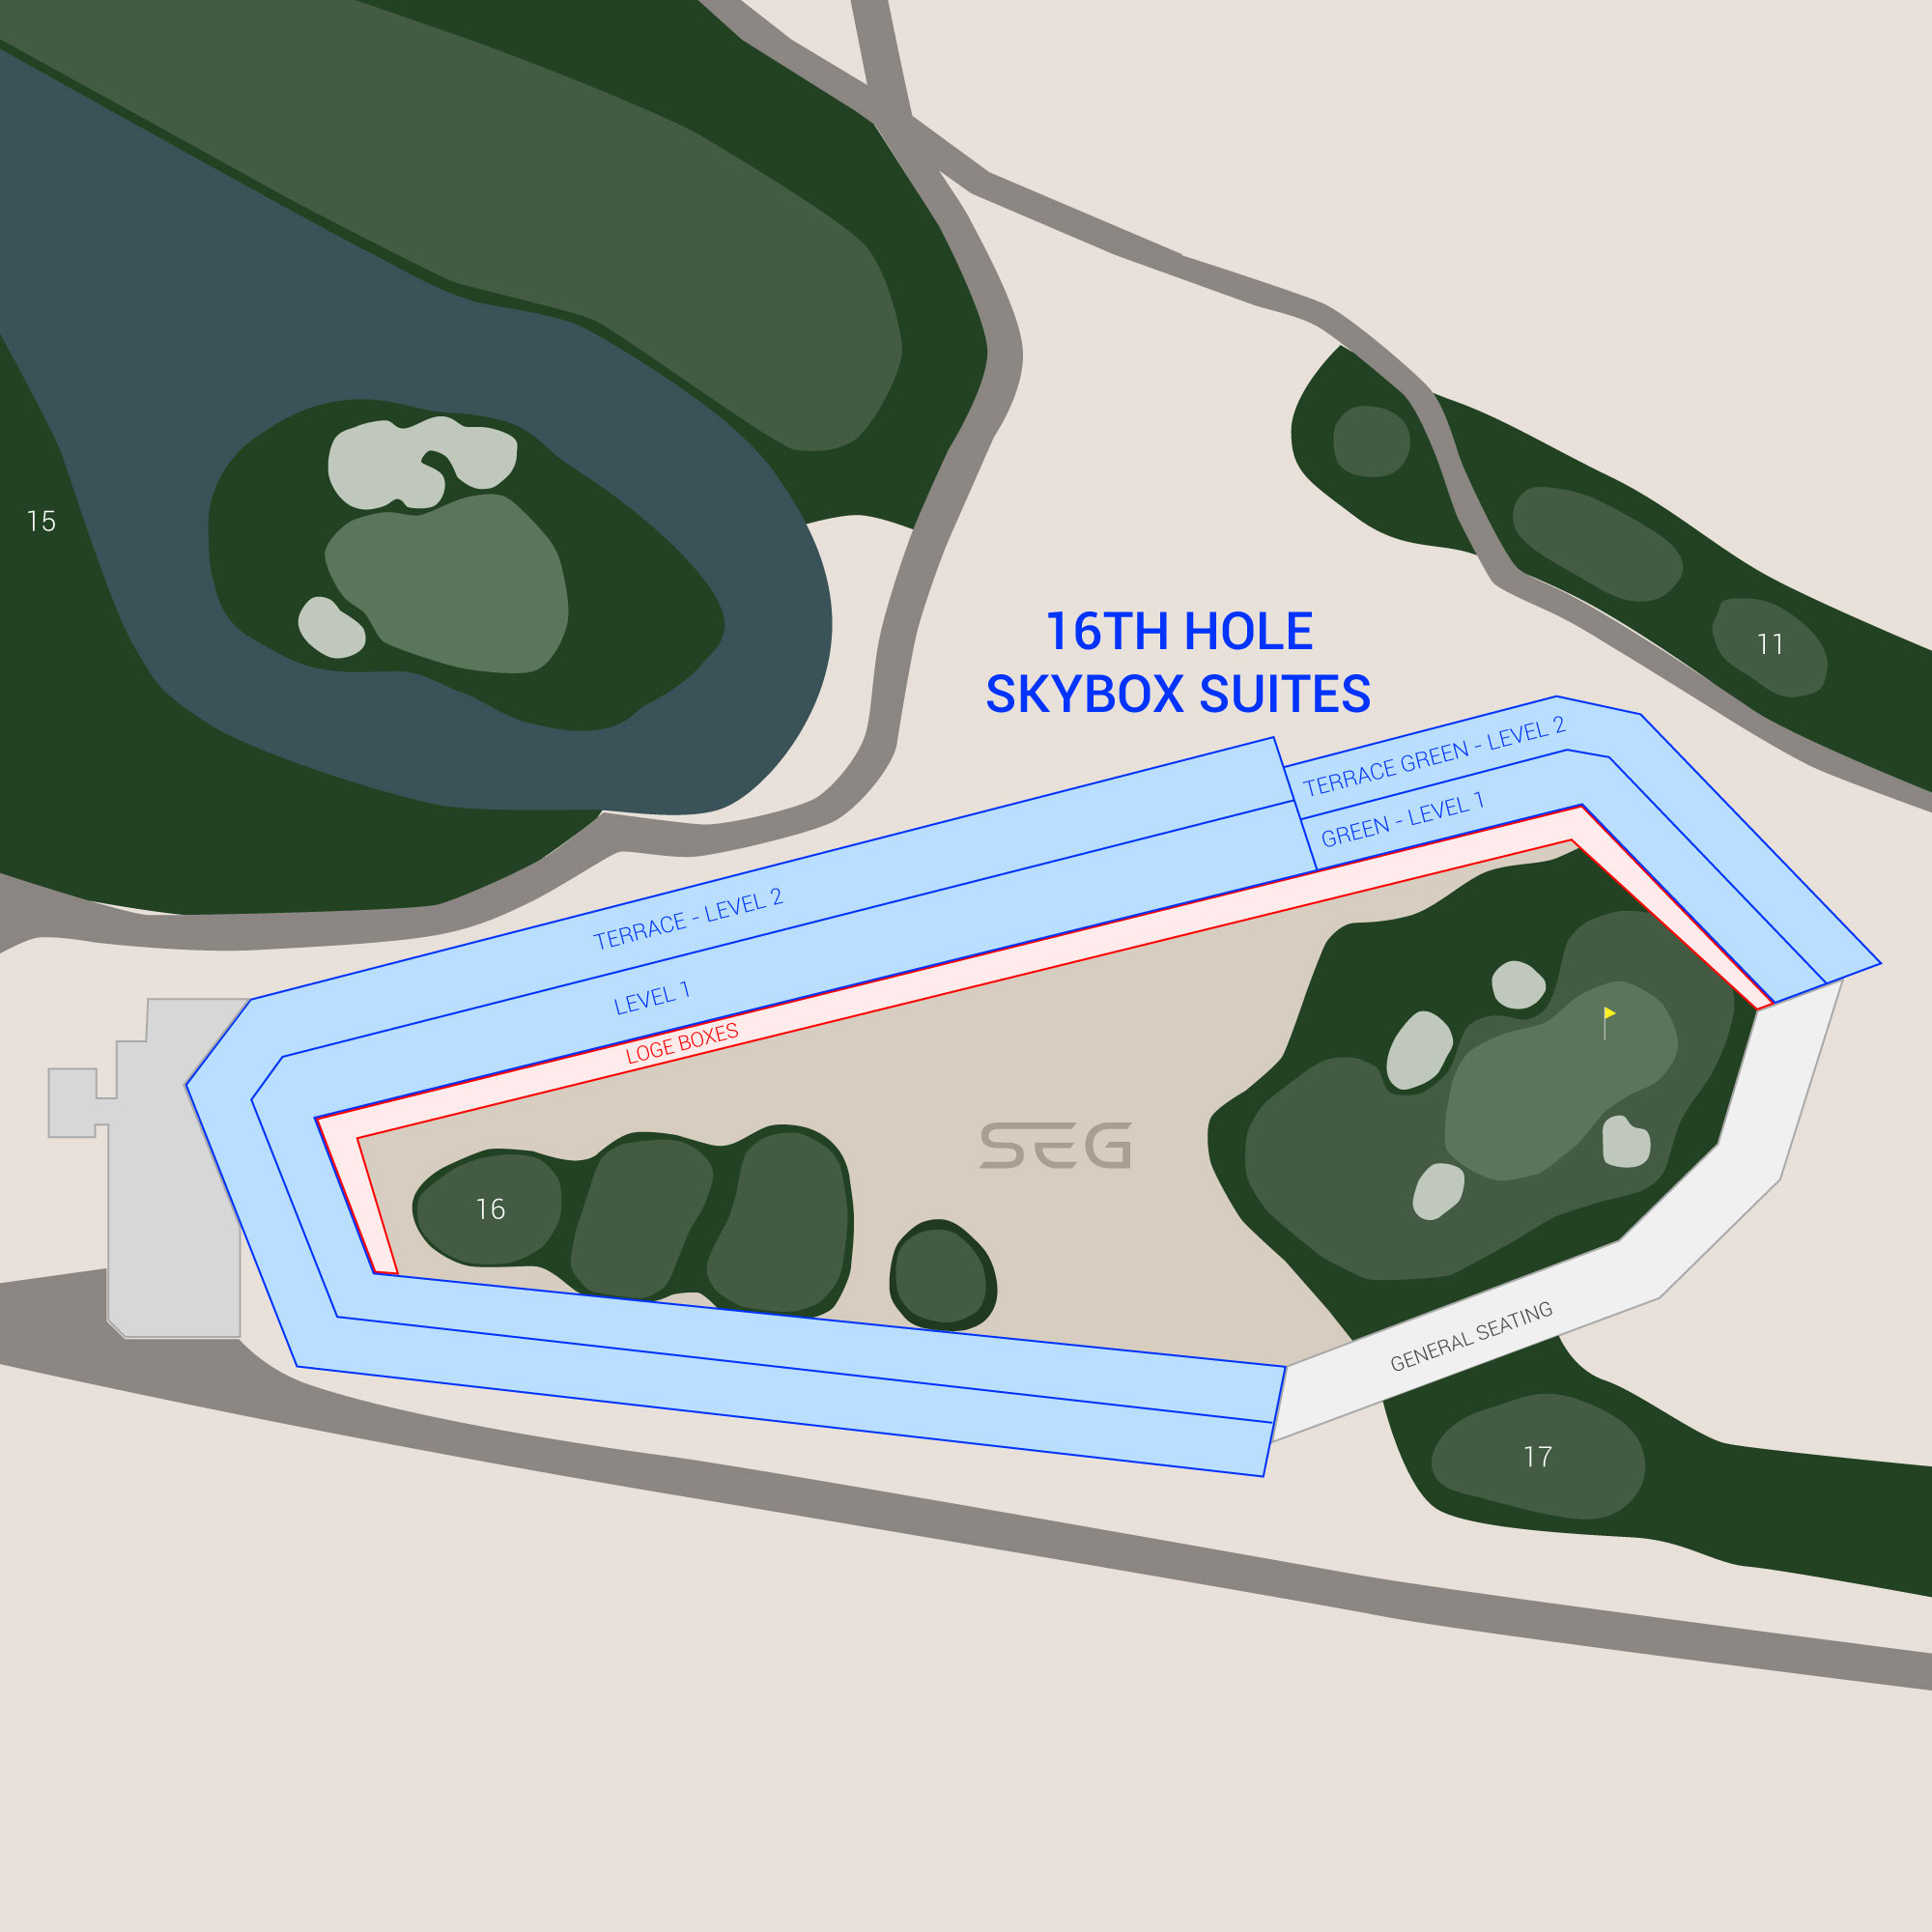 TPC Scottsdale / Waste Management Phoenix Open Suite Map and Seating Chart